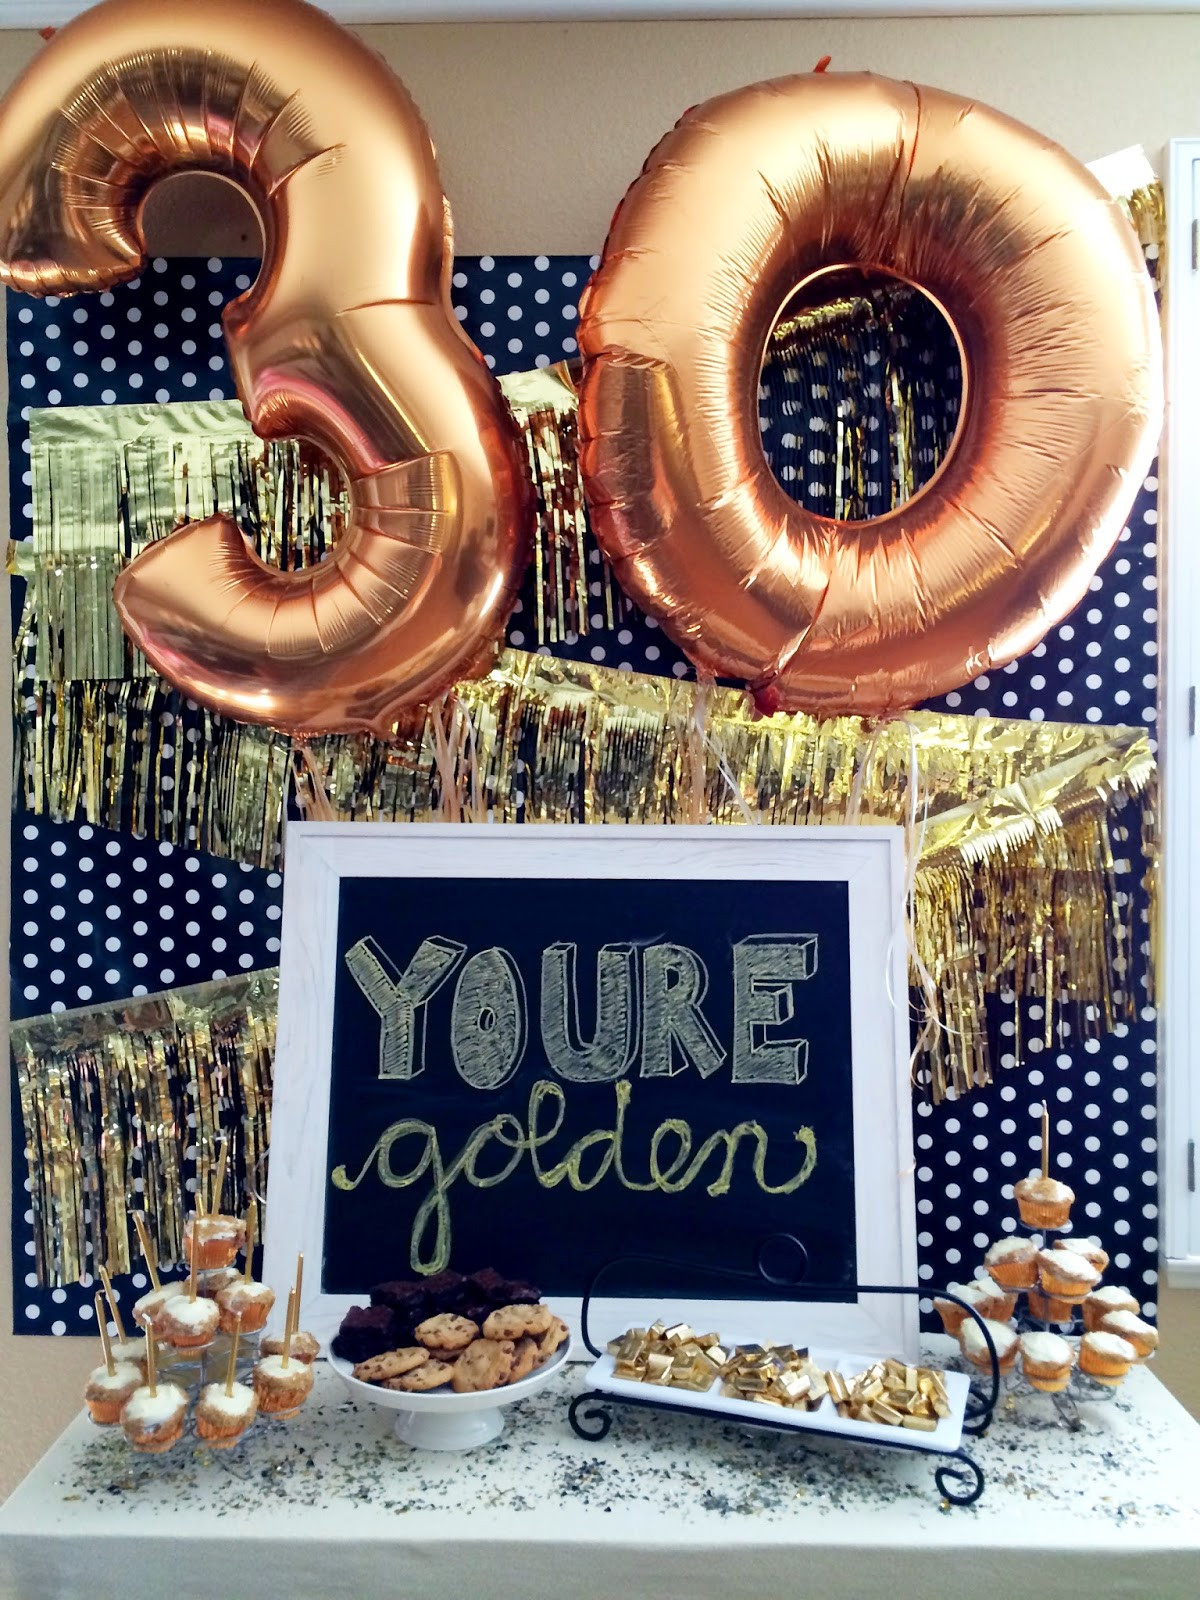 Best ideas about 30th Birthday Ideas . Save or Pin 7 Clever Themes for a Smashing 30th Birthday Party Now.